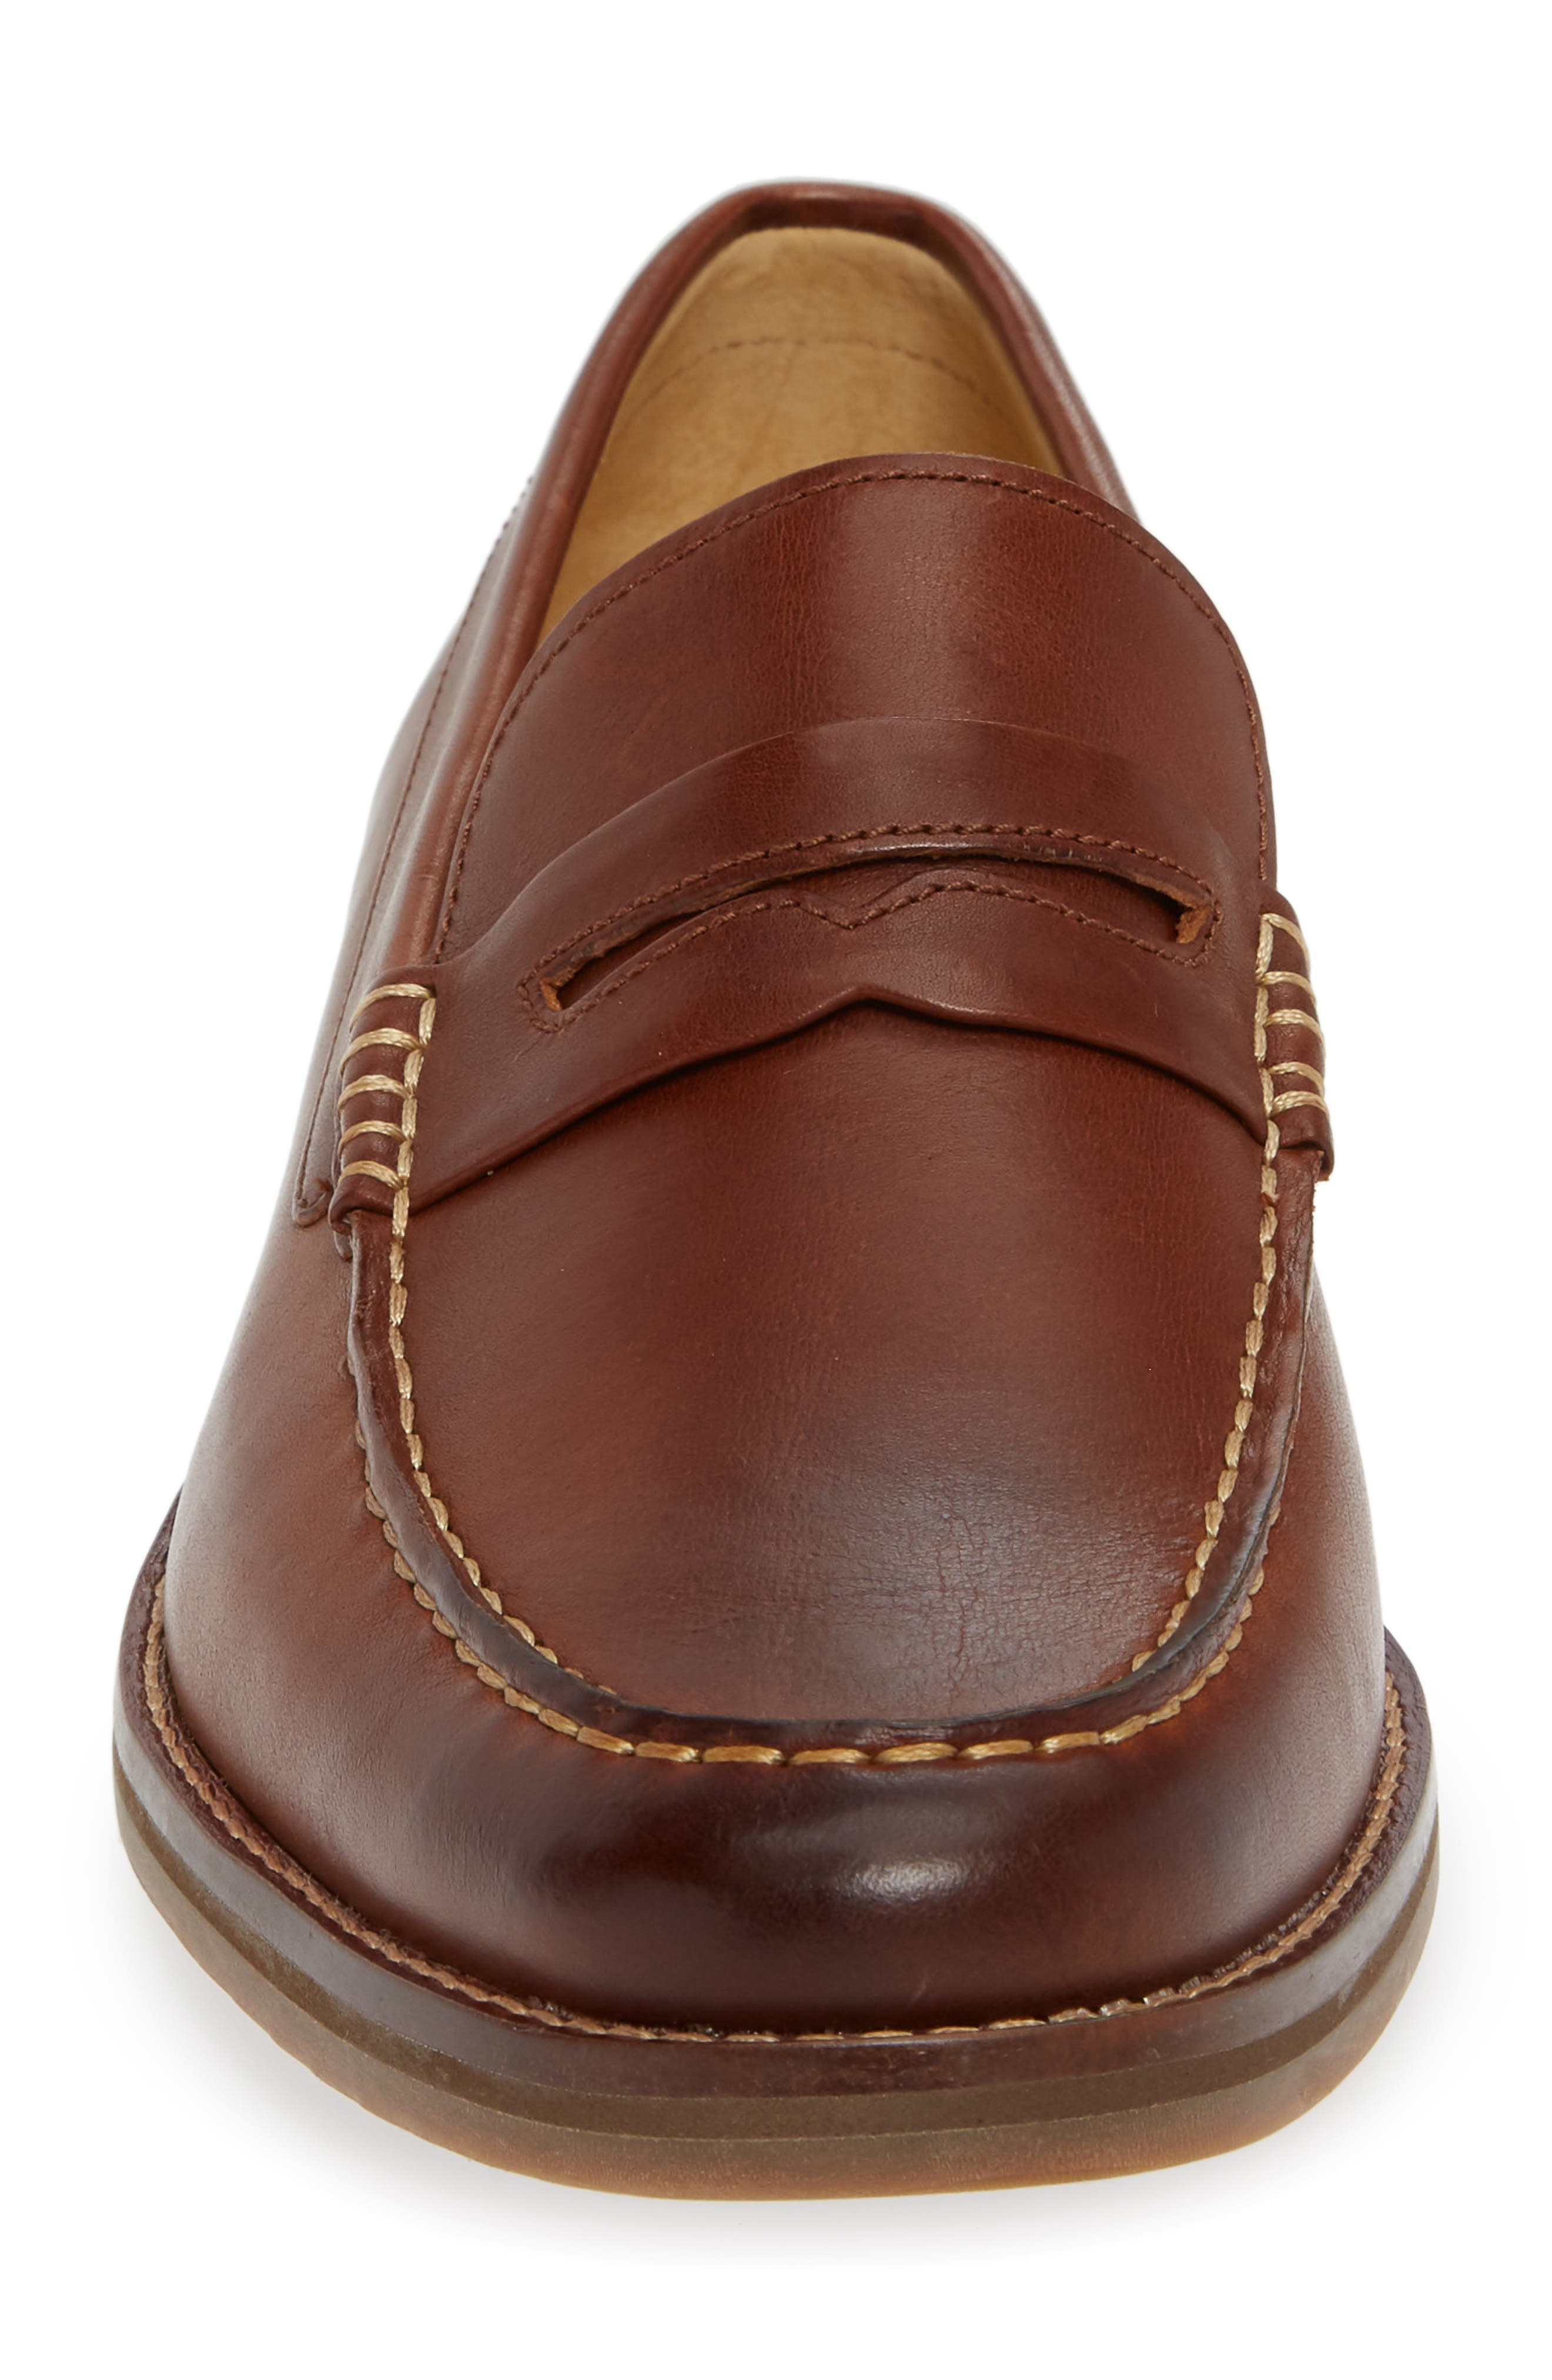 SPERRY, Gold Cup Exeter Penny Loafer, Alternate thumbnail 4, color, TAN